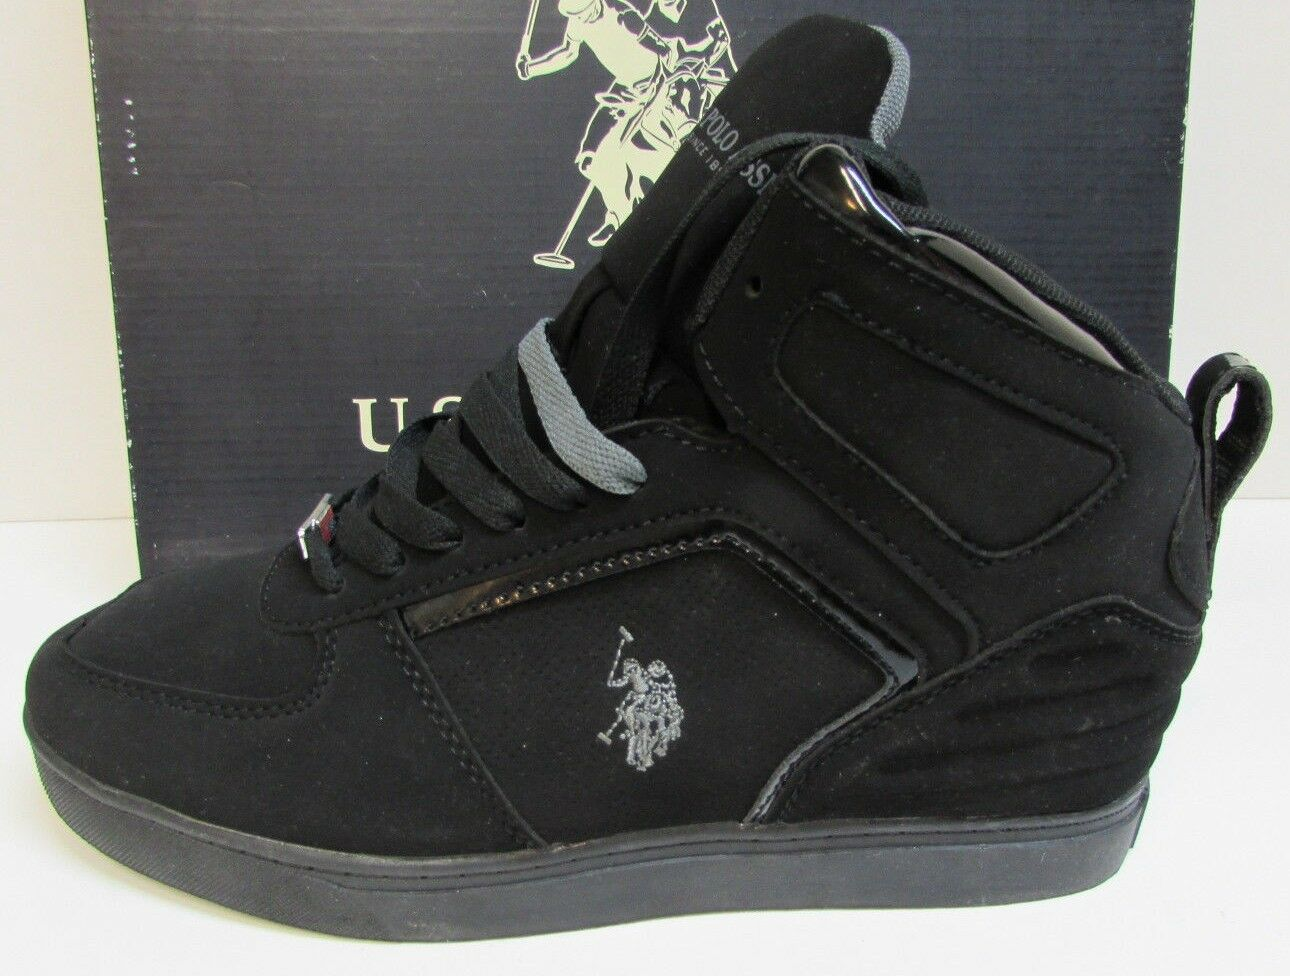 U.S. Polo Assn. Size 8.5  Black High Top Sneakers New Mens shoes